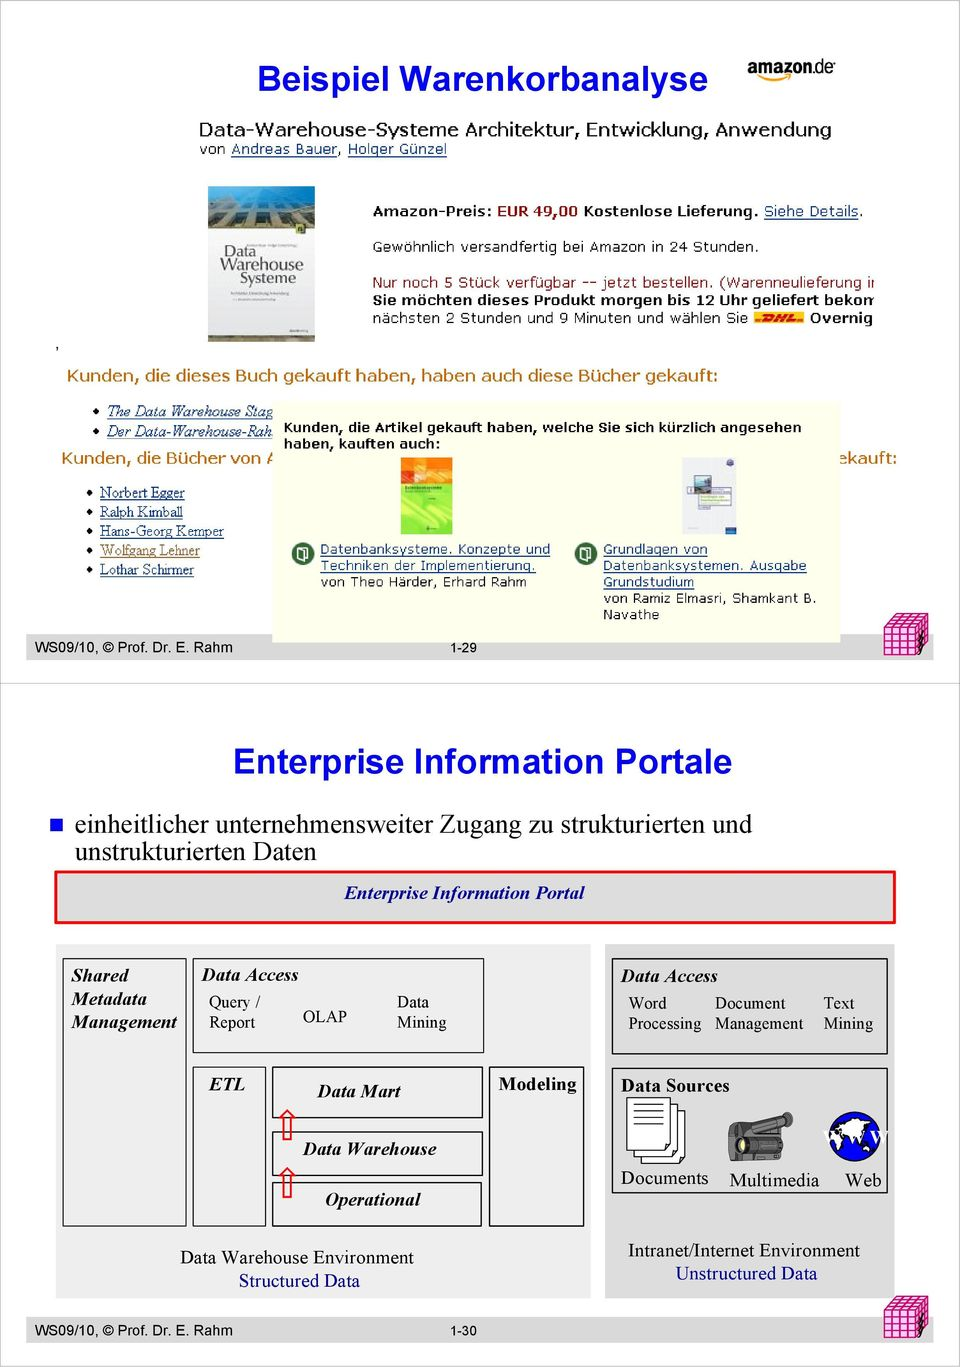 Information Portal Shared Metadata Management Data Access Quer / Report OLAP Data Mining Data Access Word Document Processing Management